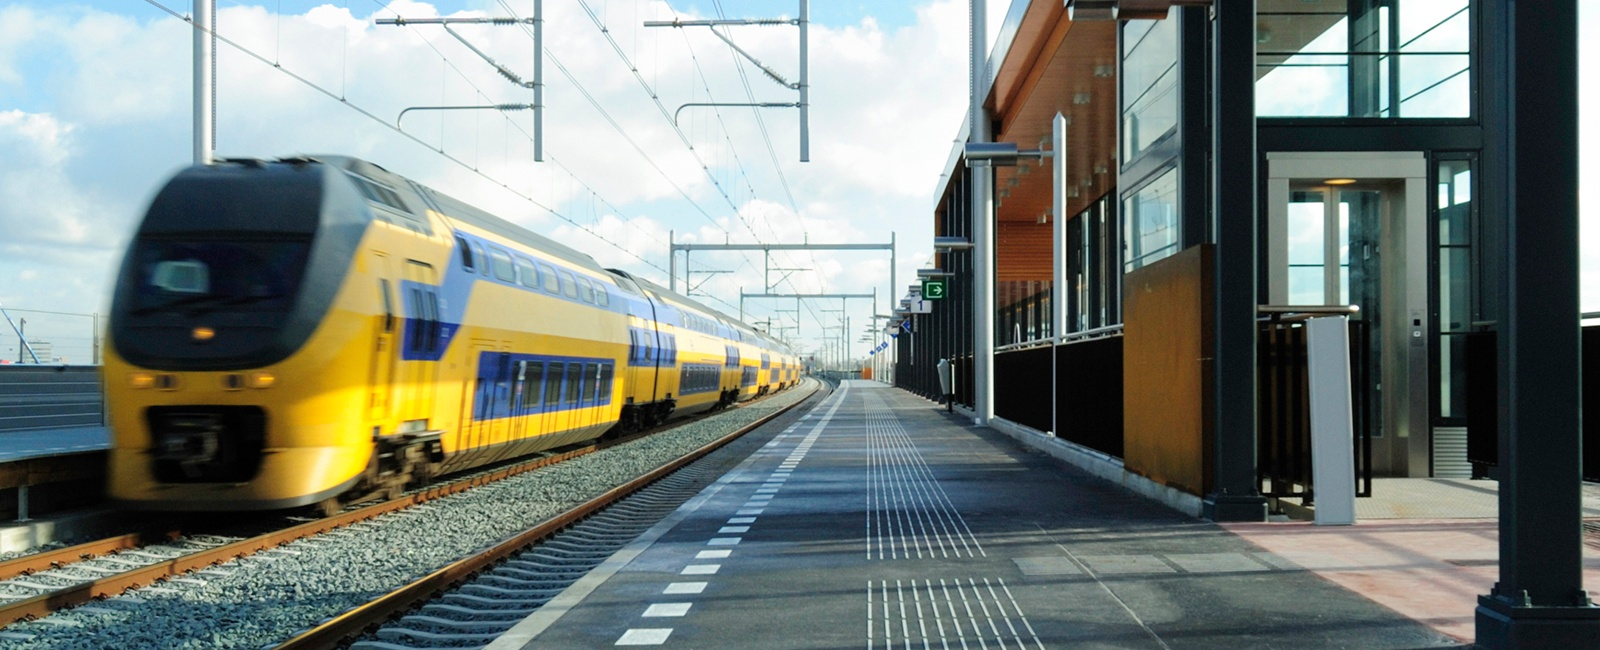 wireless infrastructure for train control systems